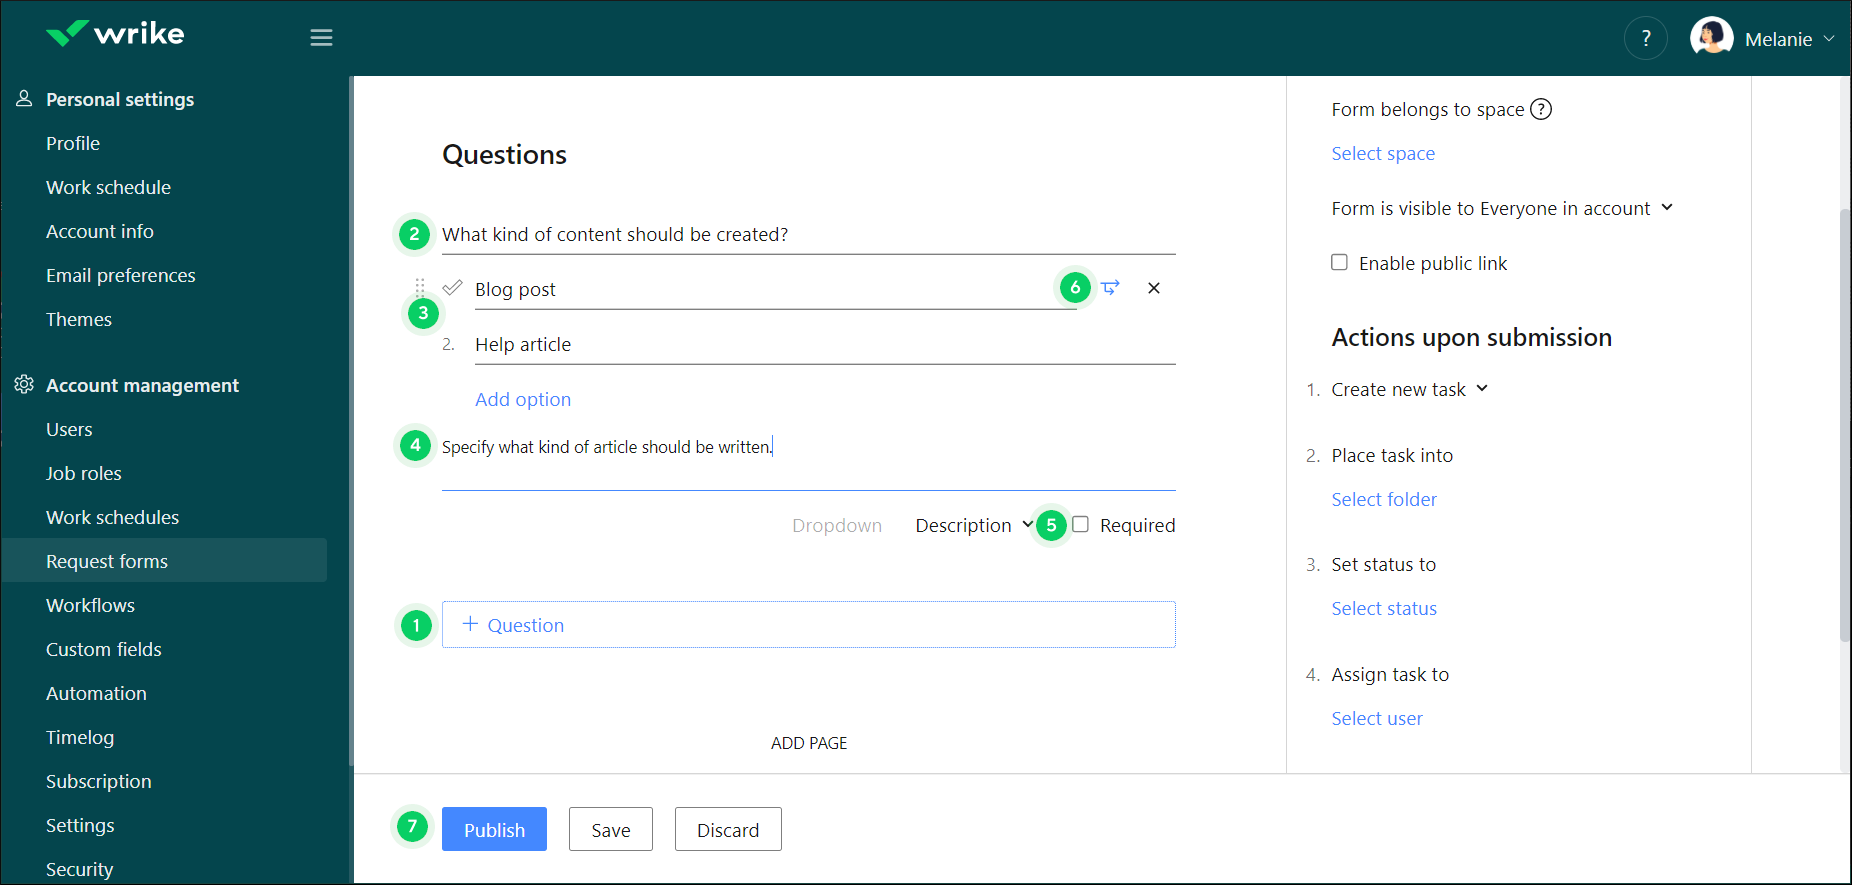 Creating_Request_Forms-Add_questions_to_your_form.png